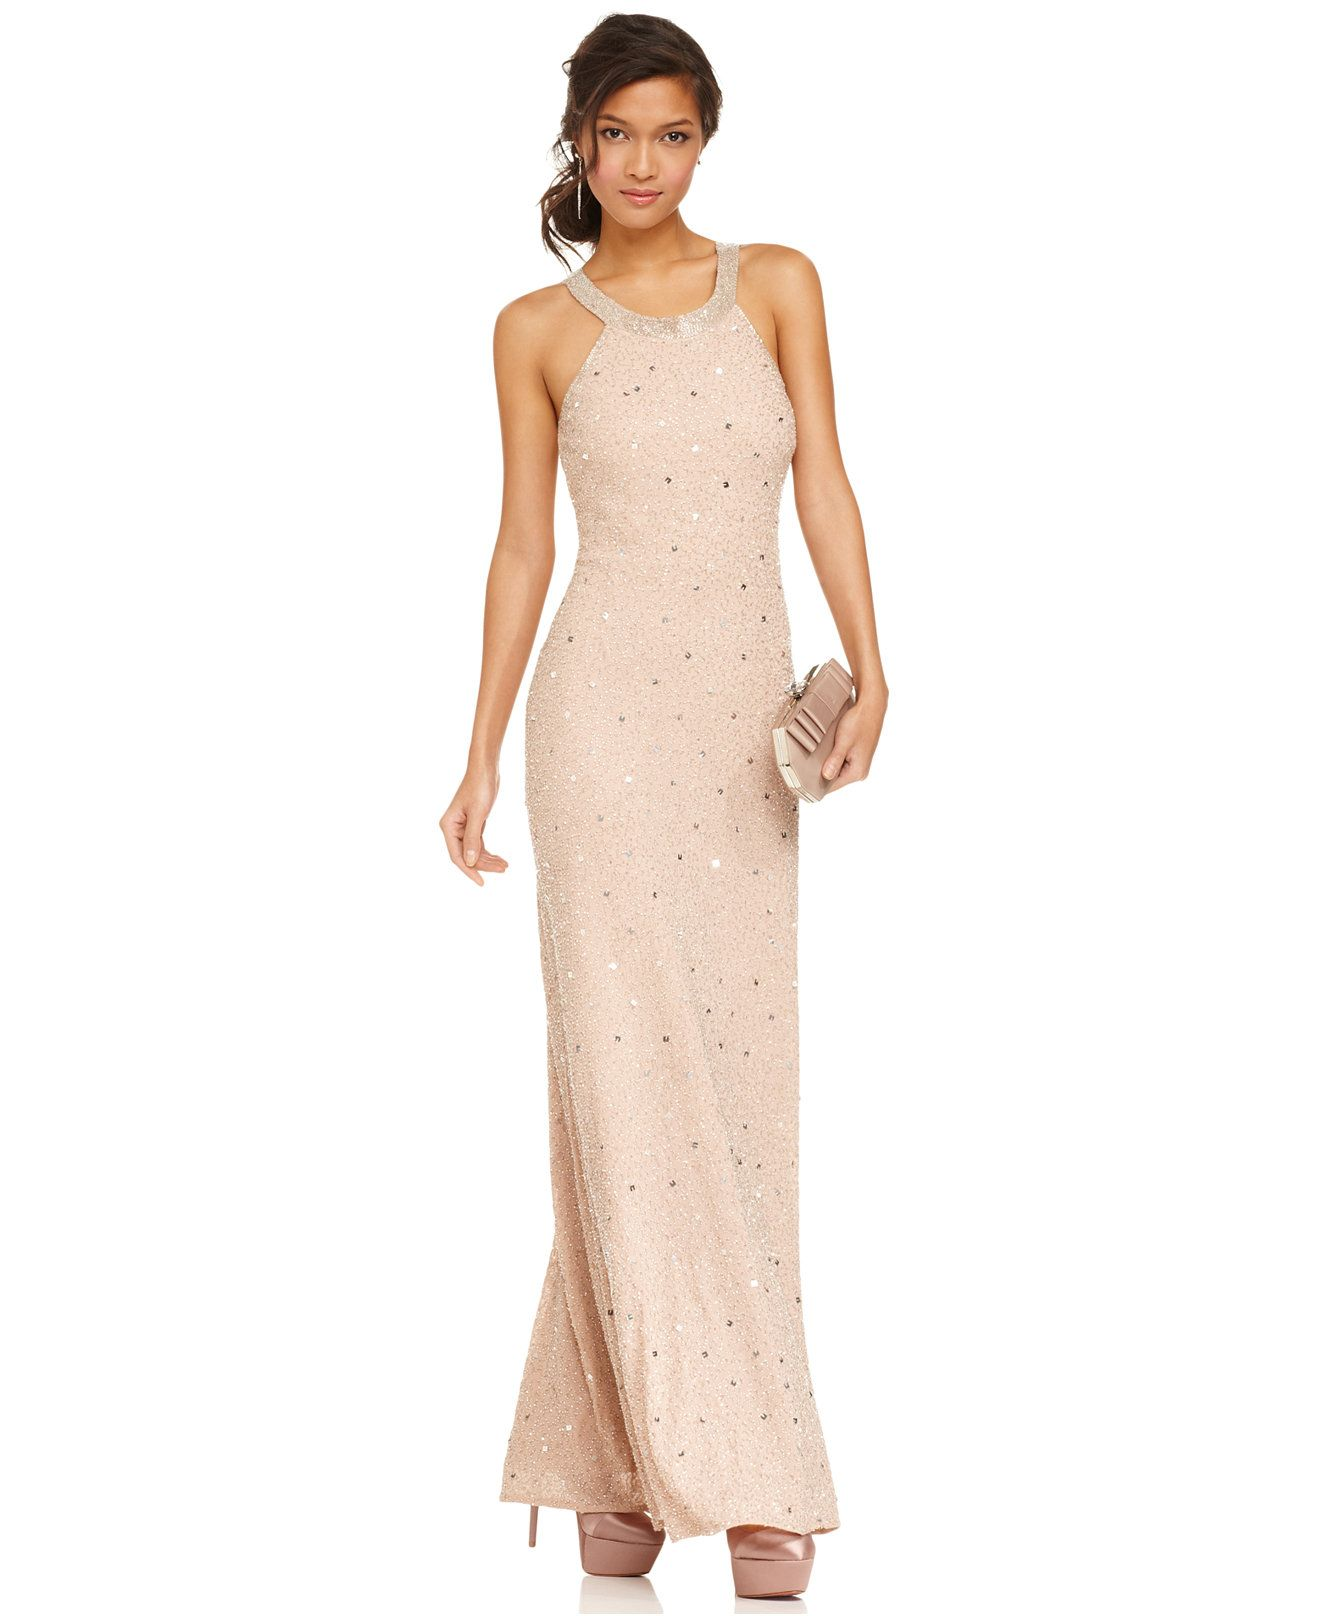 Adrianna Papell Petite Beaded Illusion-Back Halter Gown - Dresses ...